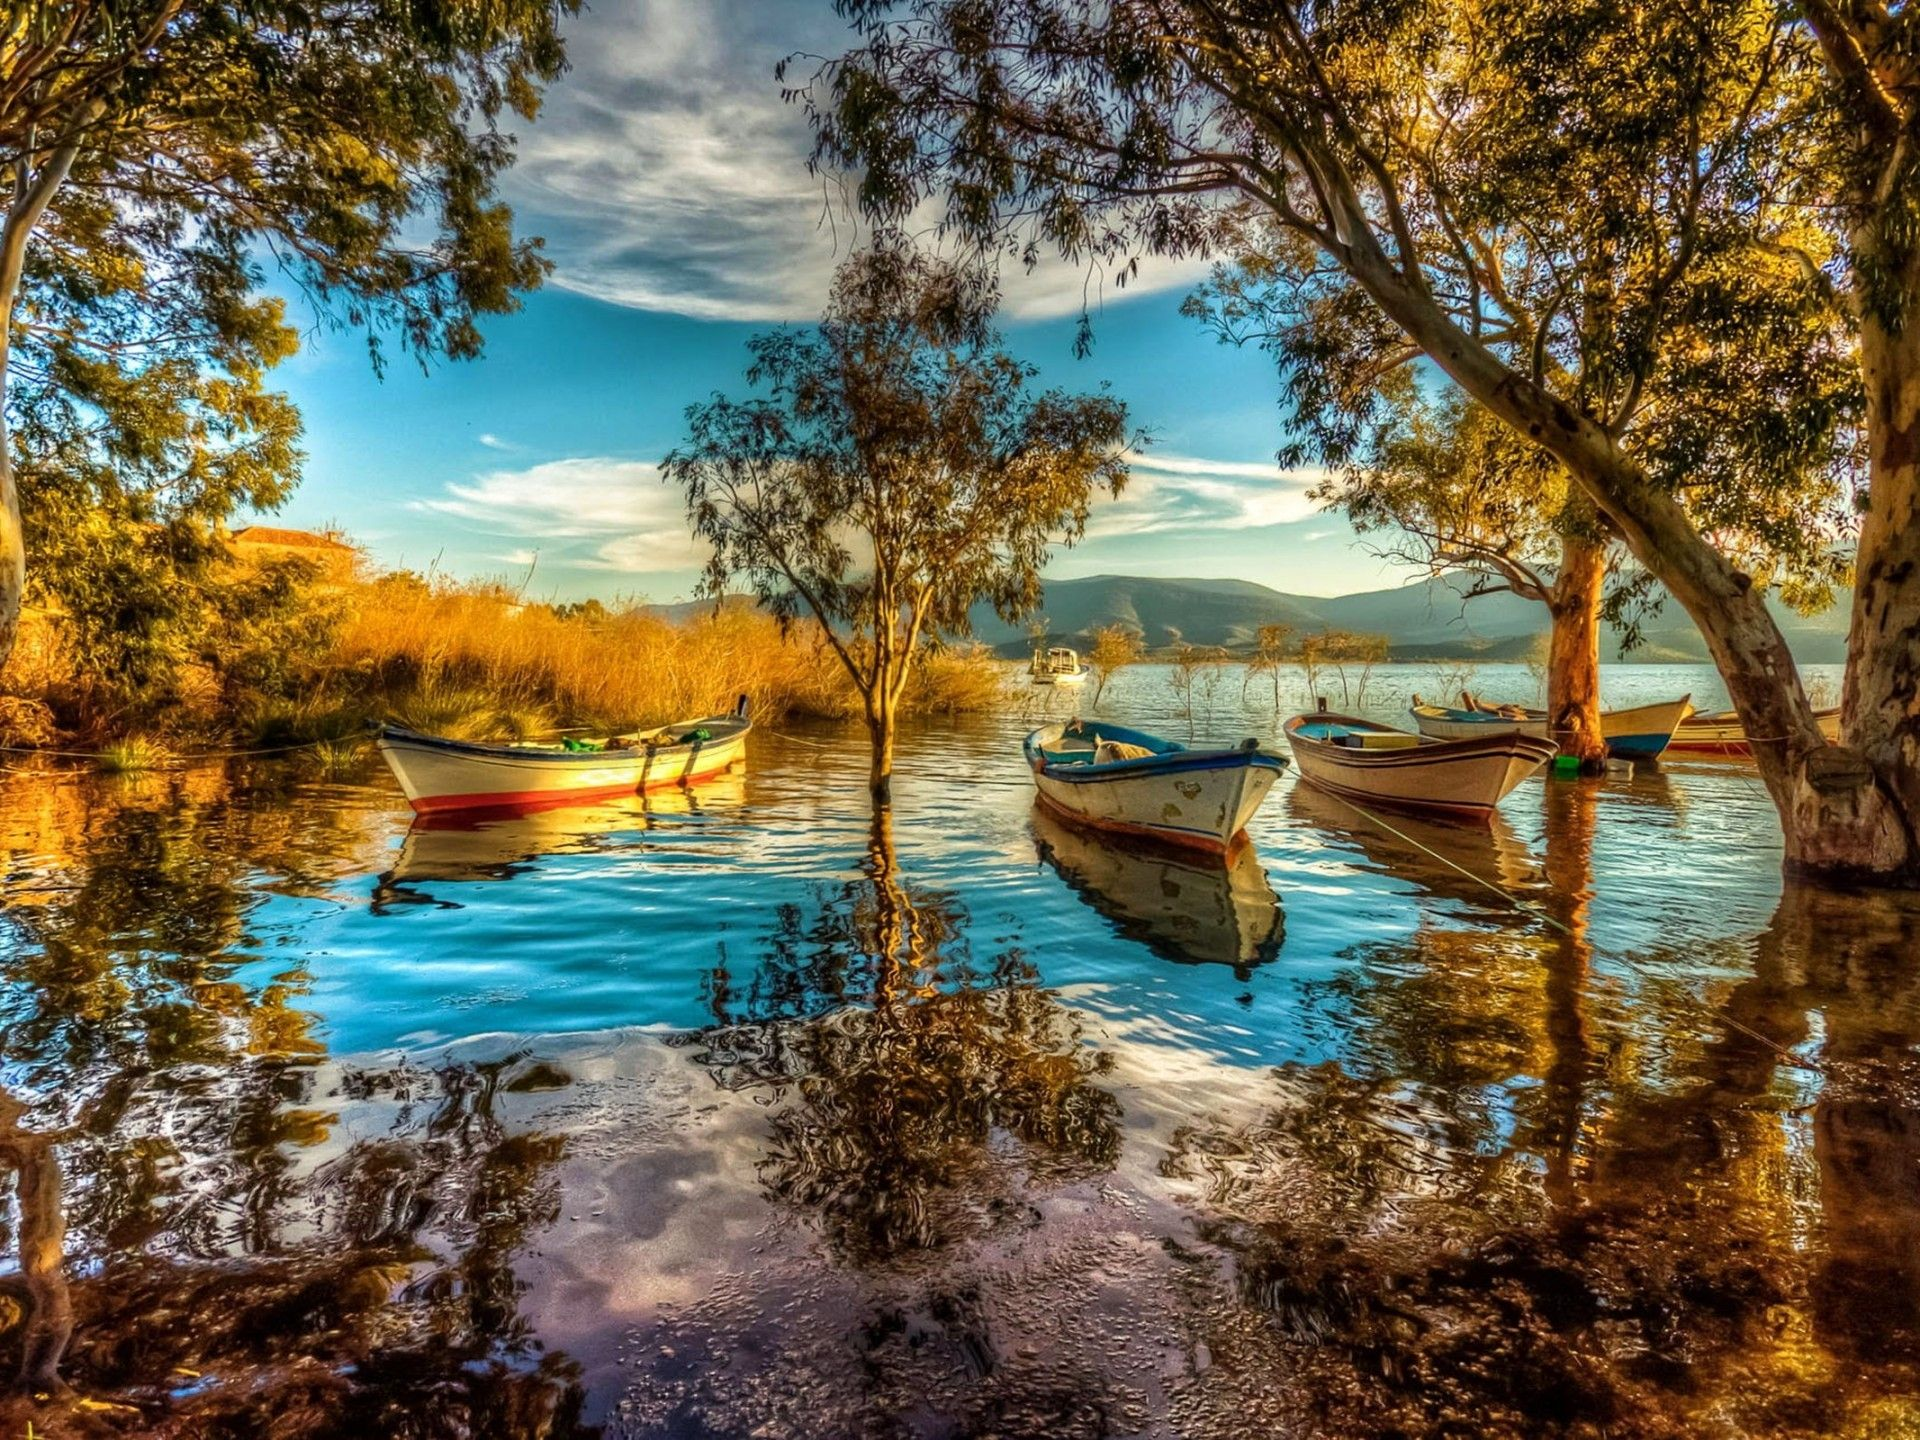 New background images hd quality - Download background images hd quality HD Download New ...